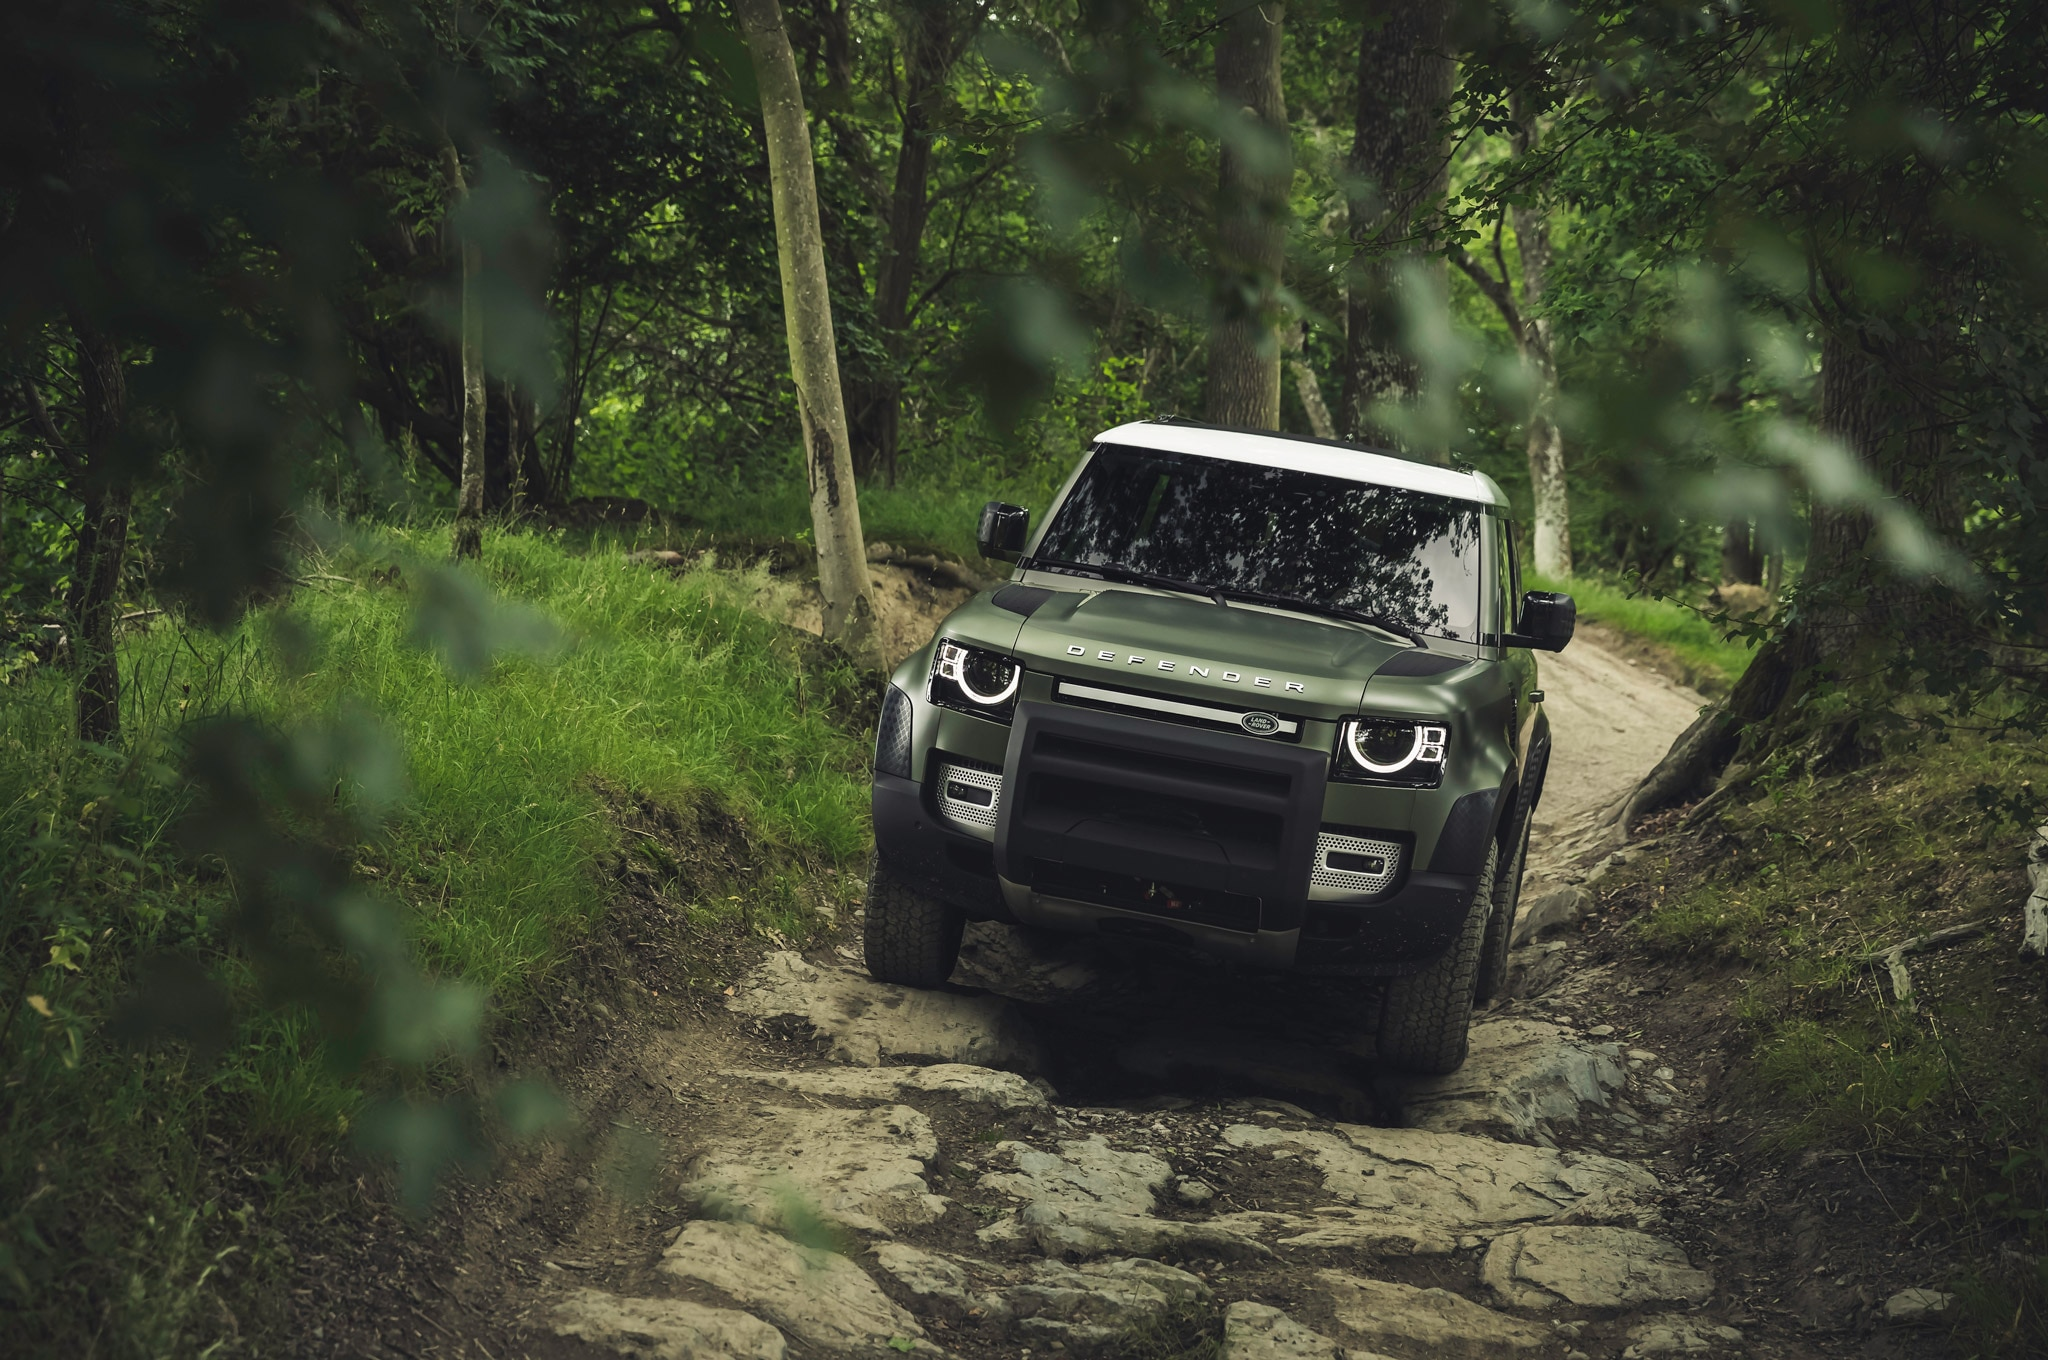 2020 land rover defender 90 off road rocks 01